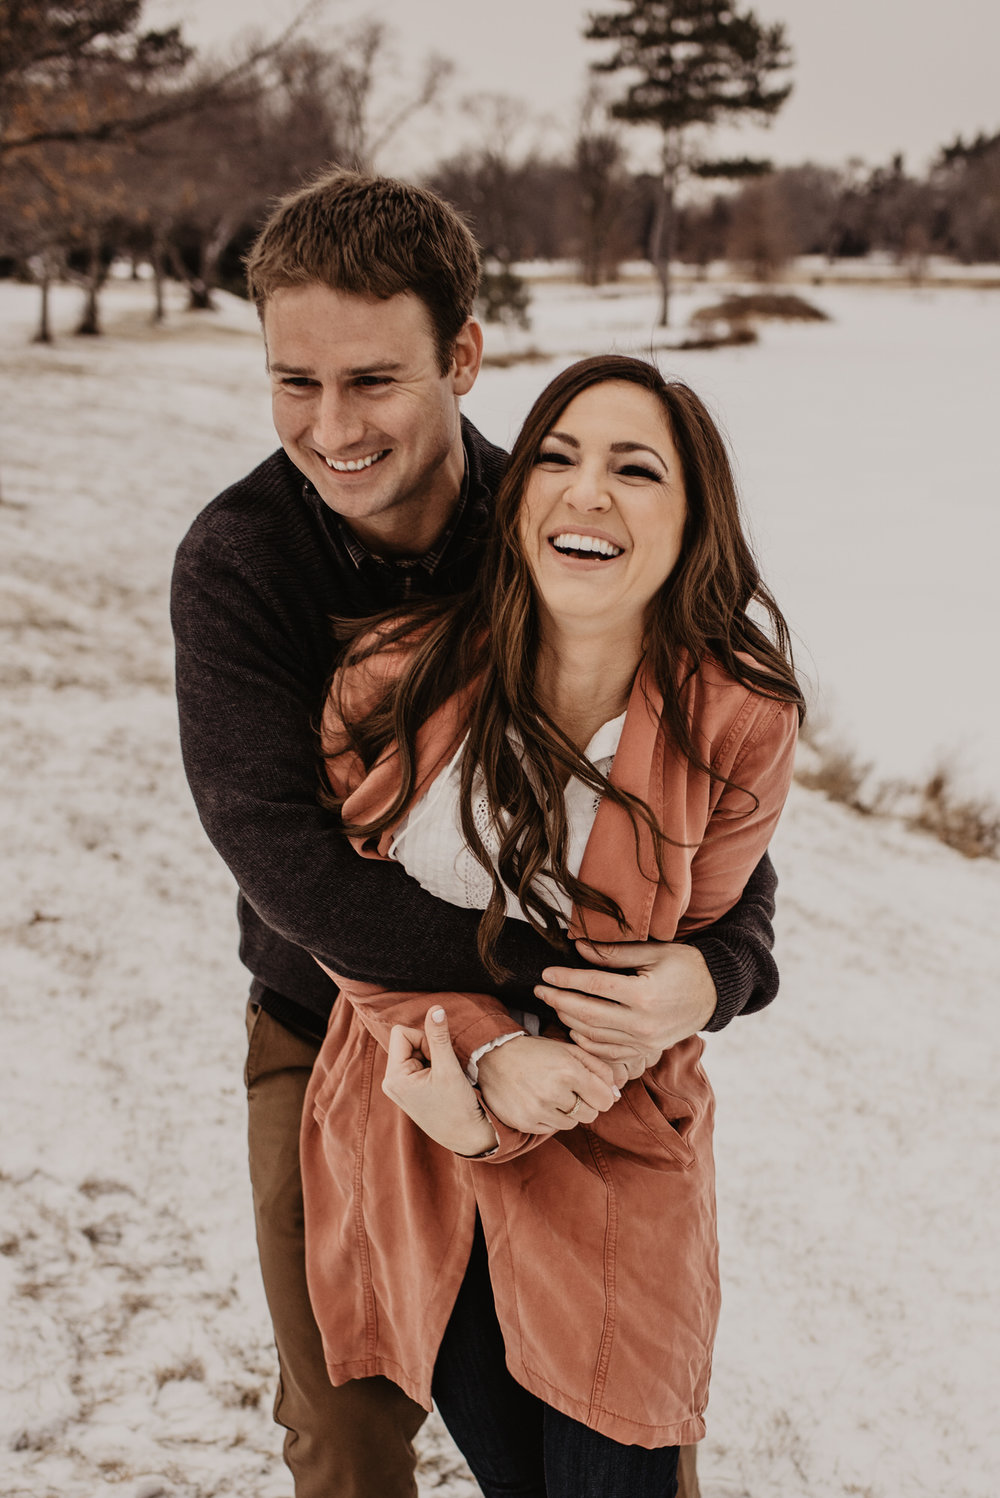 Lincoln-Columbus-Nebraska-Winter-Engagement-Kaylie-Sirek-Photography-13.jpg